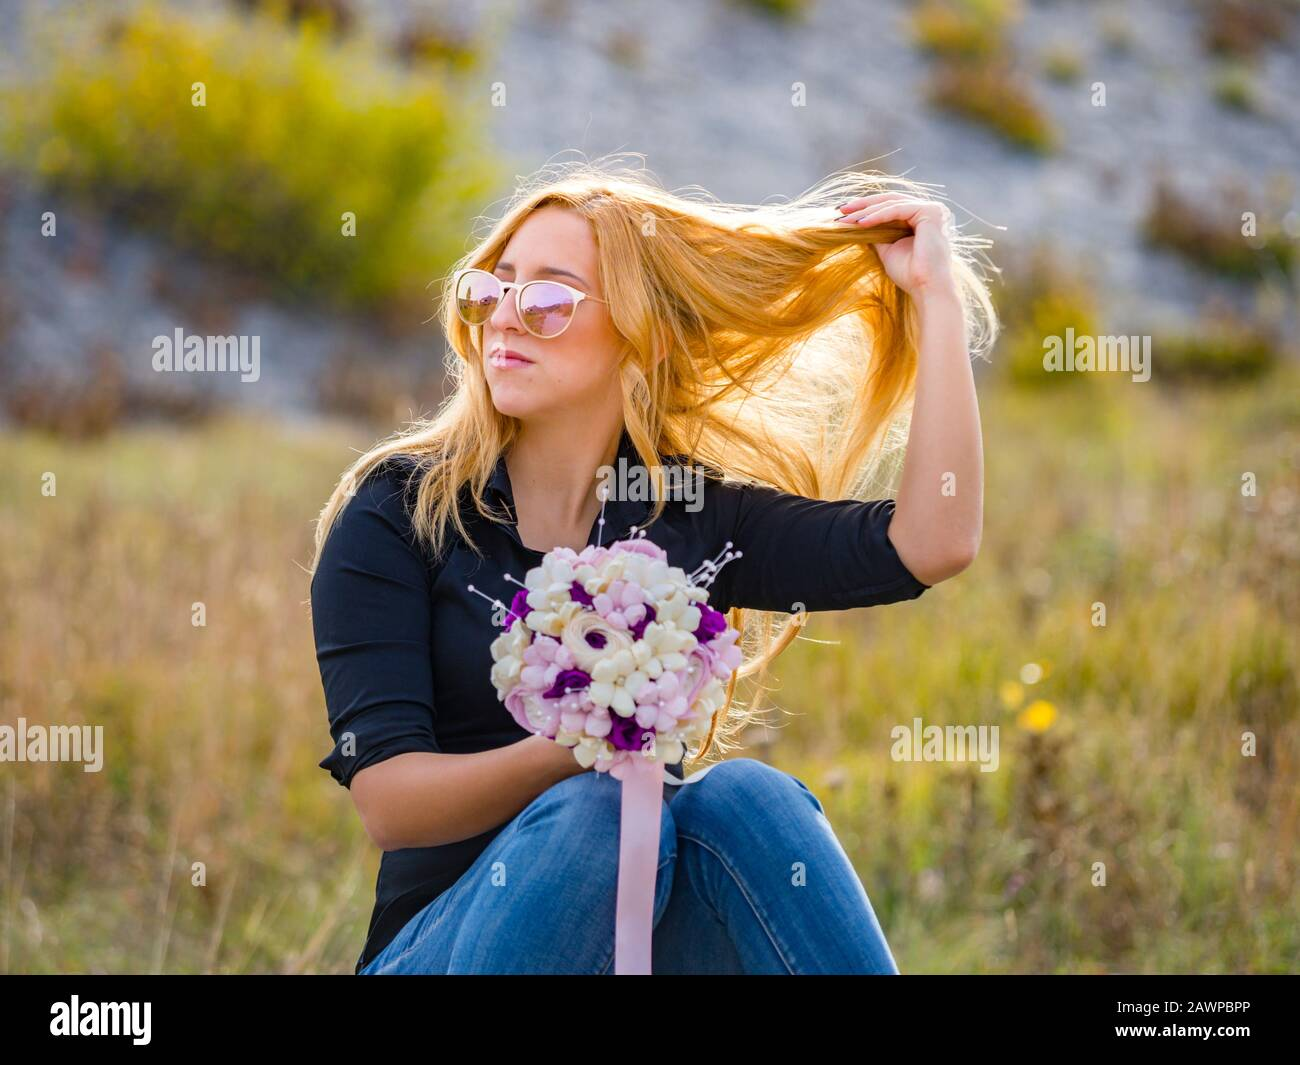 Teen girl hand holding flowery bouquet throwing up fixing hair looking away aside sunlight sunshine bright highlight Stock Photo